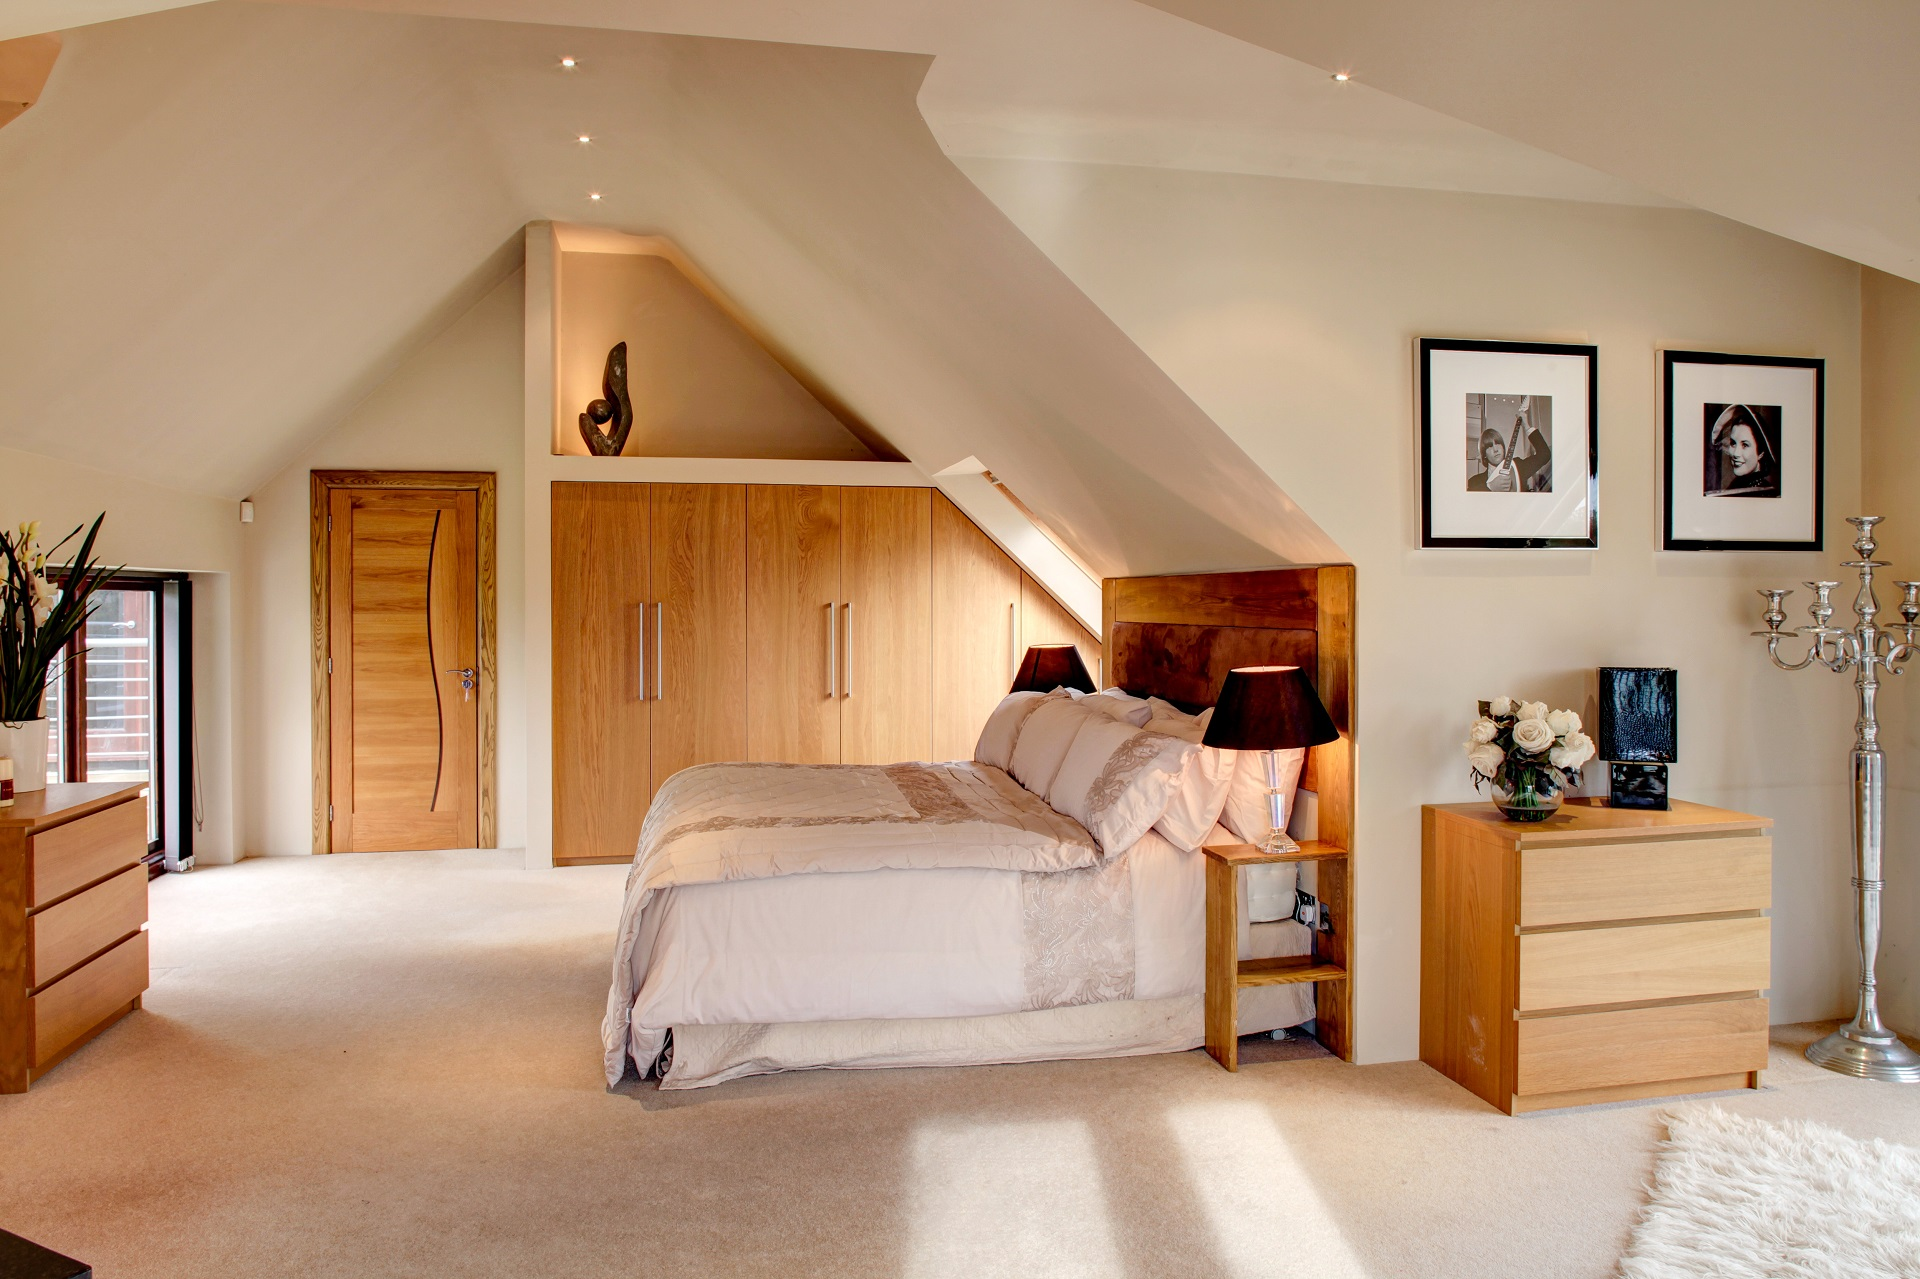 designer bedroom, interior design, nottingham, fern hill